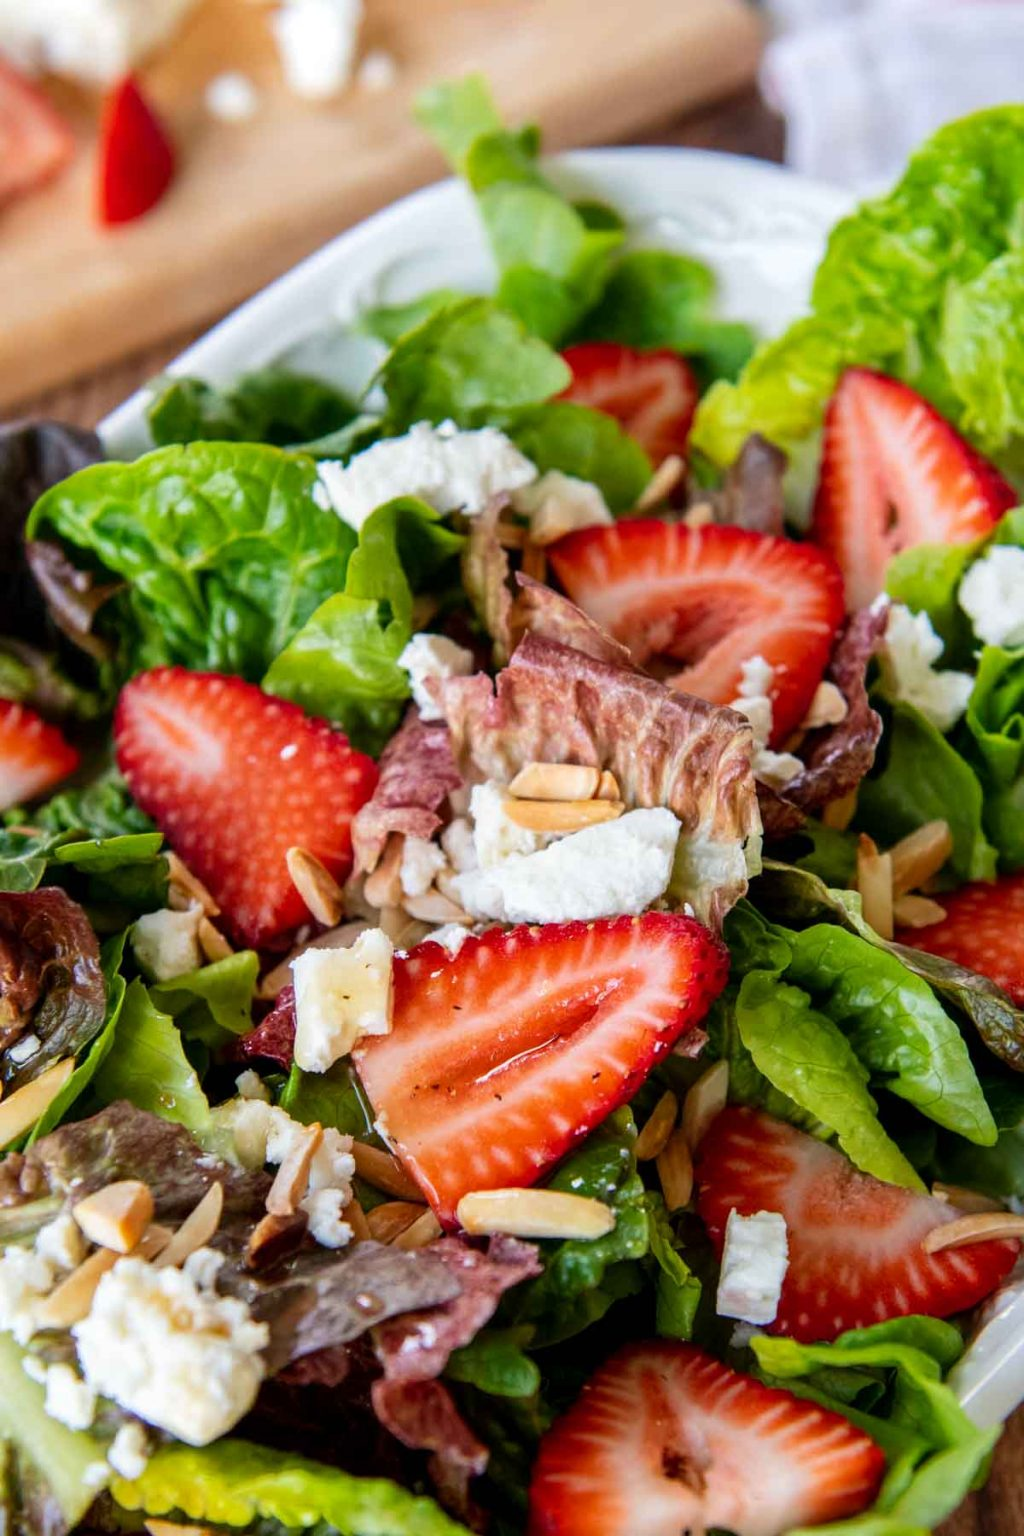 close up of strawberries and lettuce with dressing drizzled over top